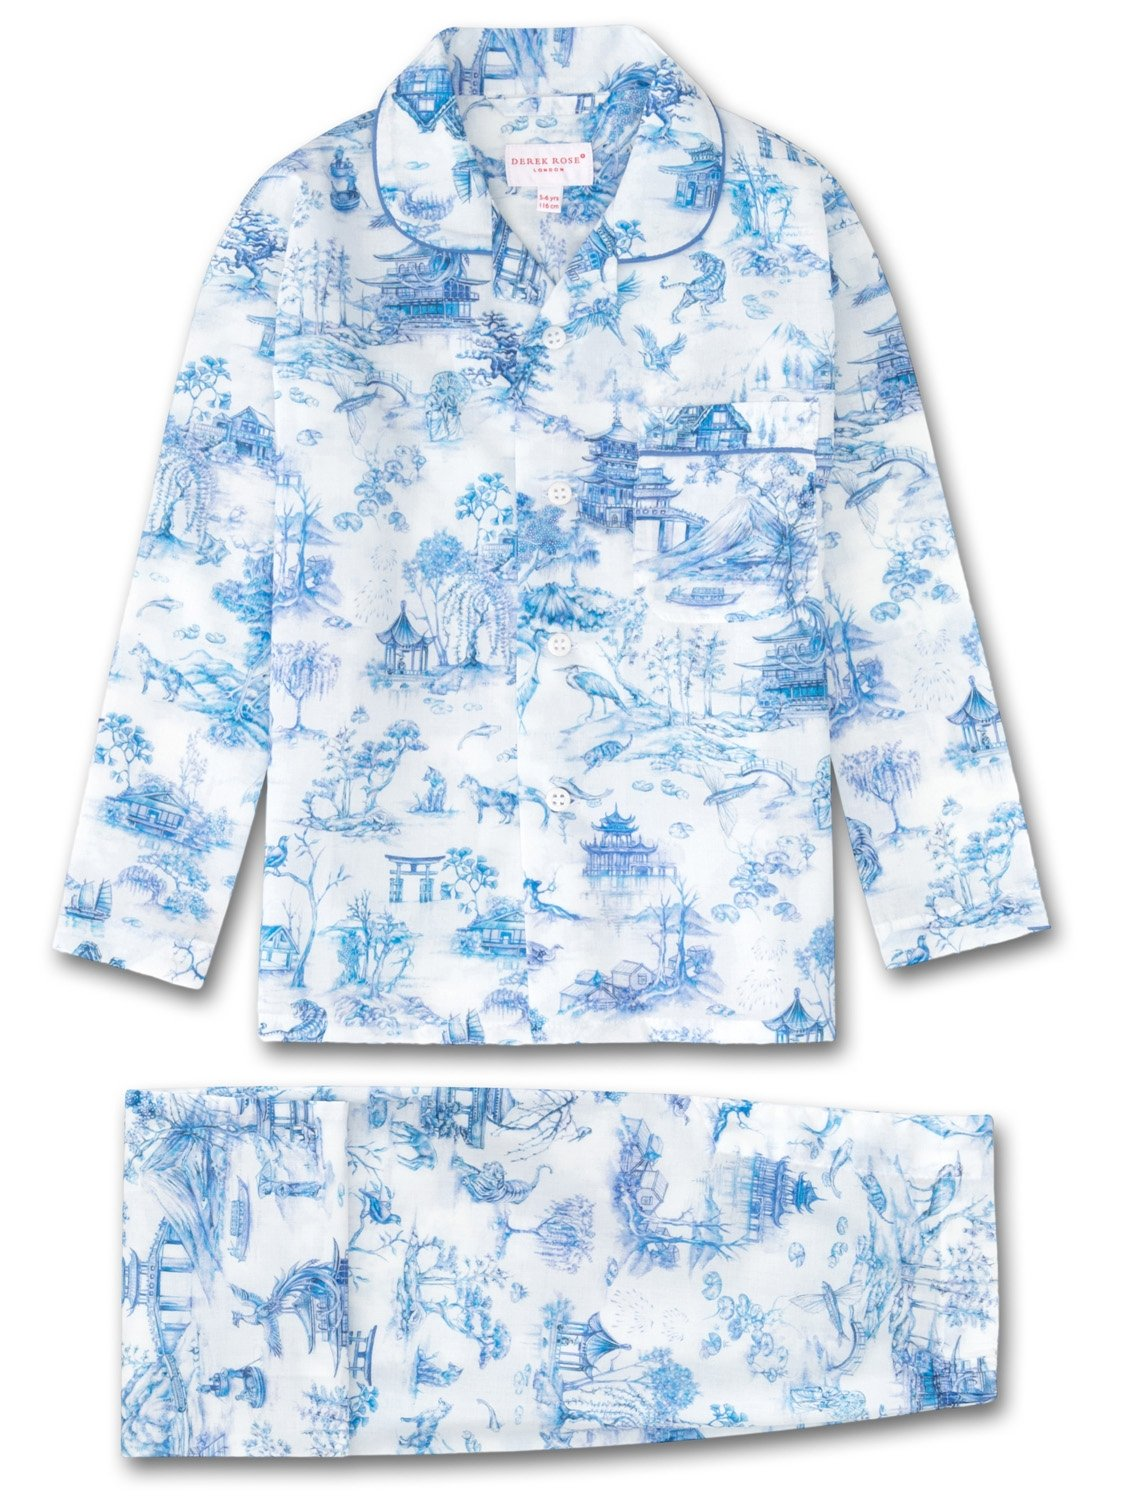 Kids' Pyjamas Ledbury 11 Cotton Batiste Blue